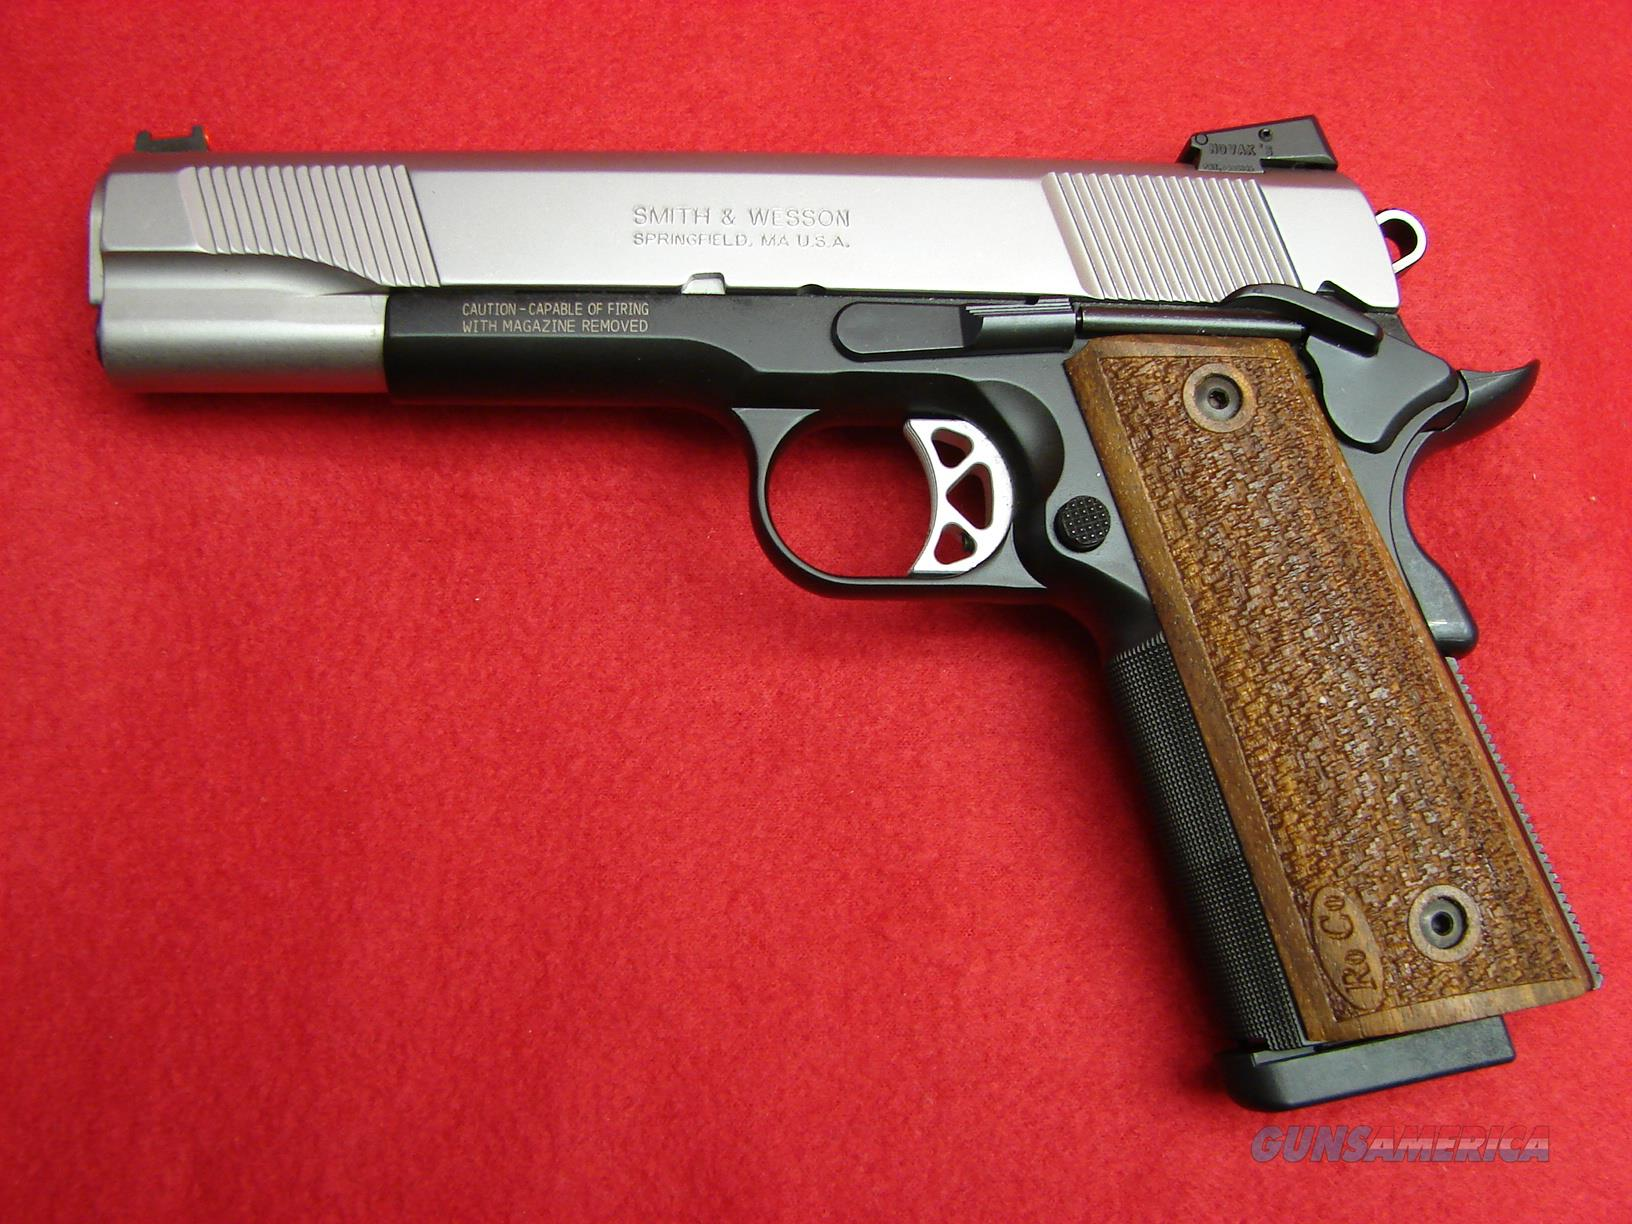 Smith & Wesson SW1911 - Pro Series - 45acp - NIB  Guns > Pistols > Smith & Wesson Pistols - Autos > Steel Frame